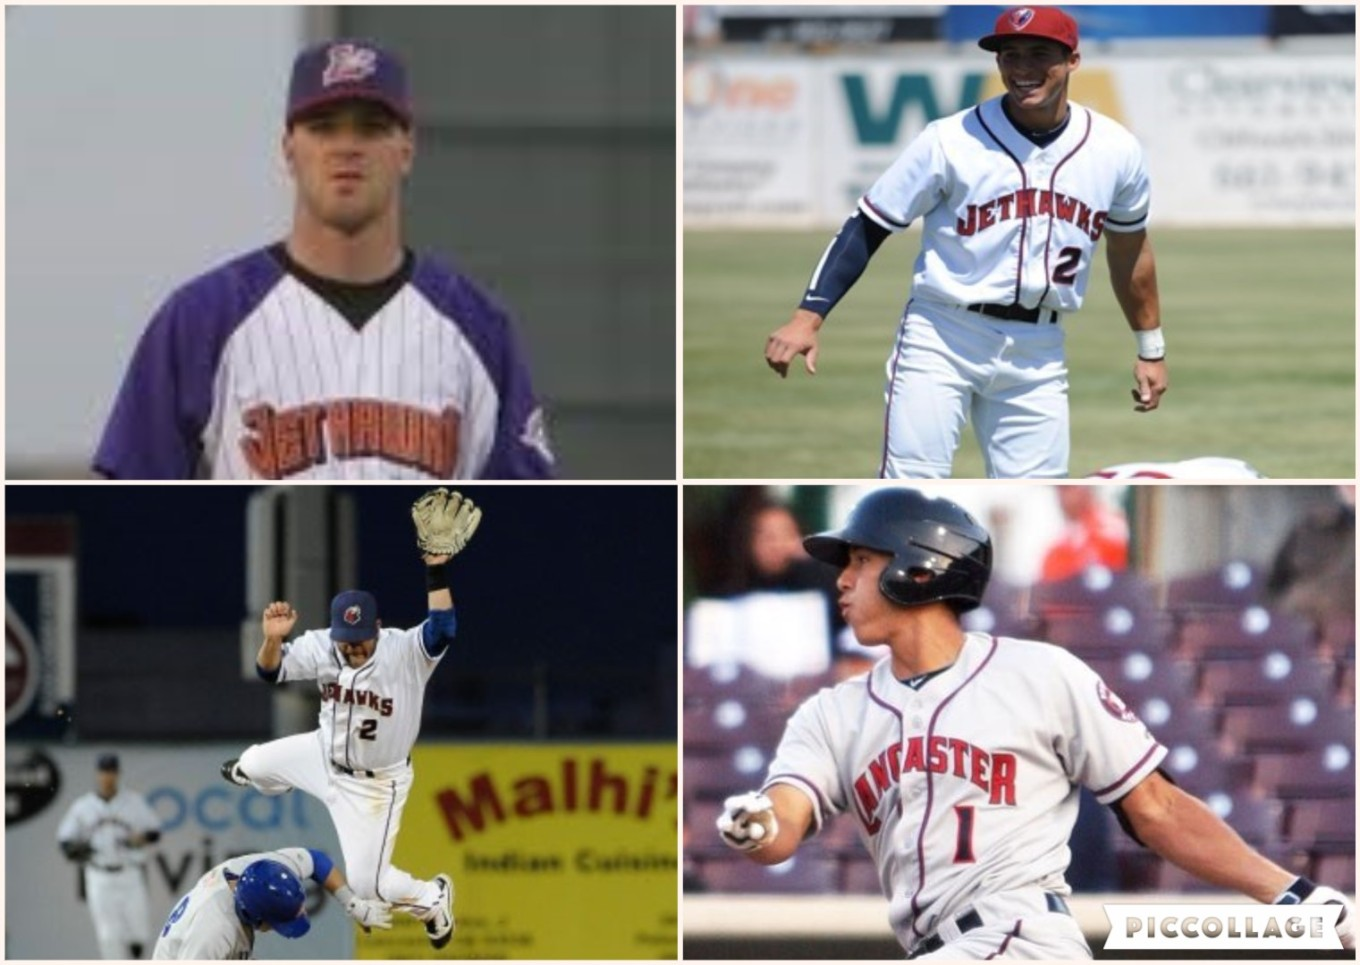 Baby Astros collage